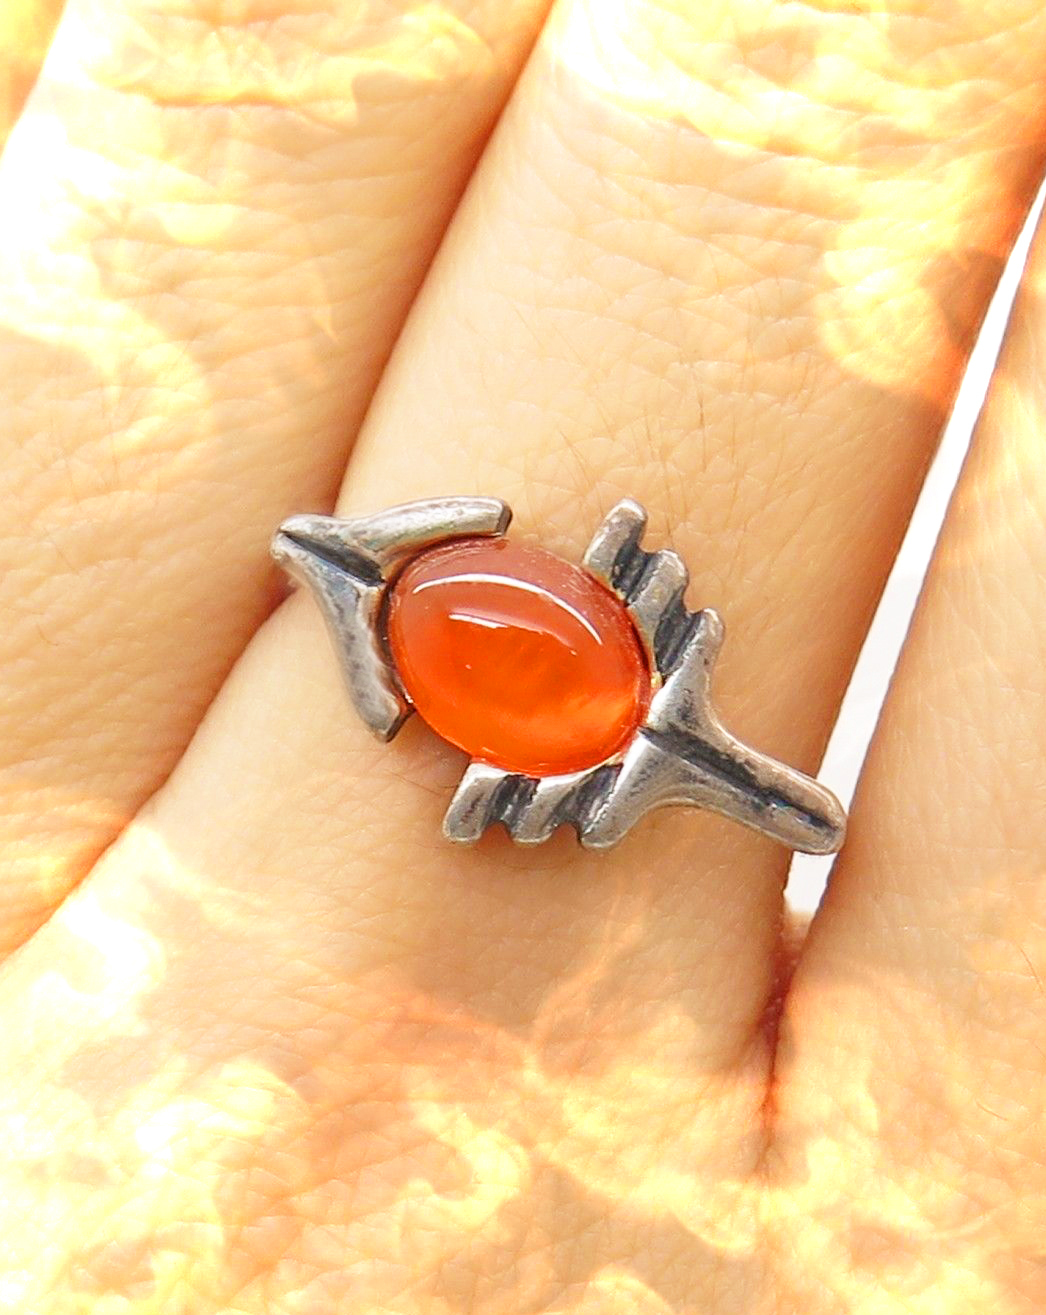 HAUNTED AUTOMATIC WRITING RING 300X SPIRIT TOOL OFFER ONLY MAGICK 7 SCHOLAR